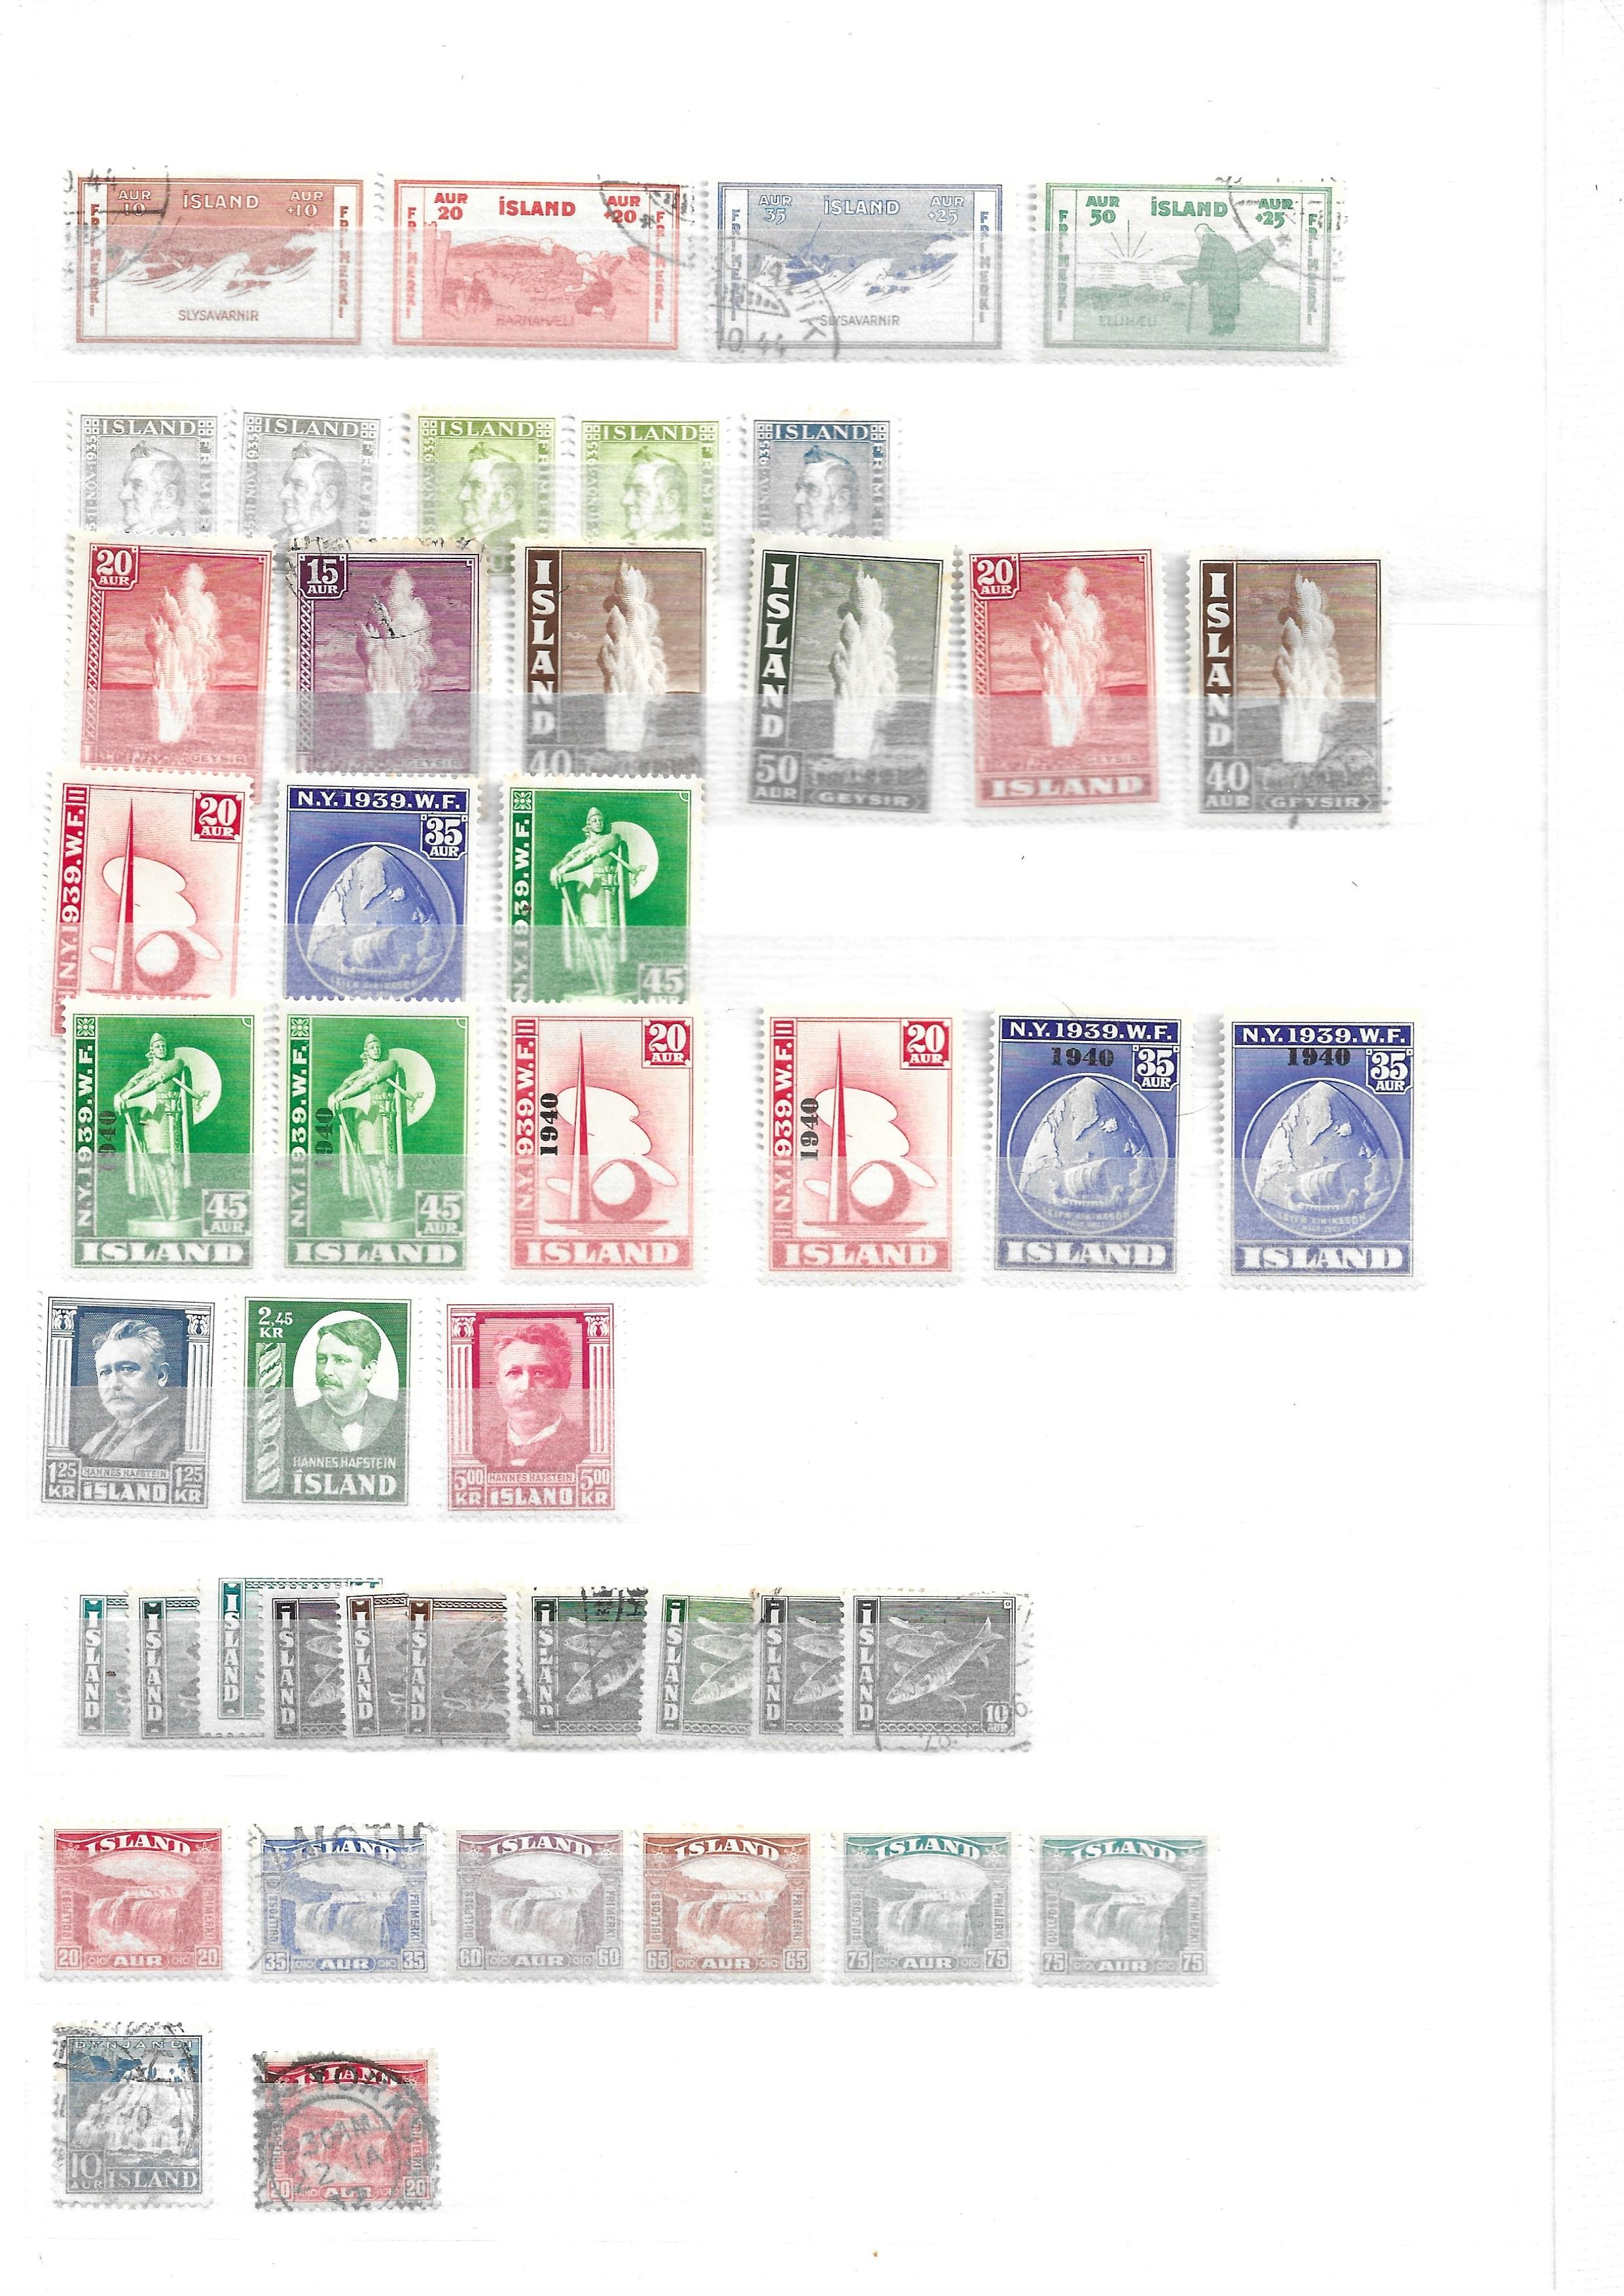 Iceland 1882-1940 unused and used collection on stockcards with sets and better values - Image 5 of 5